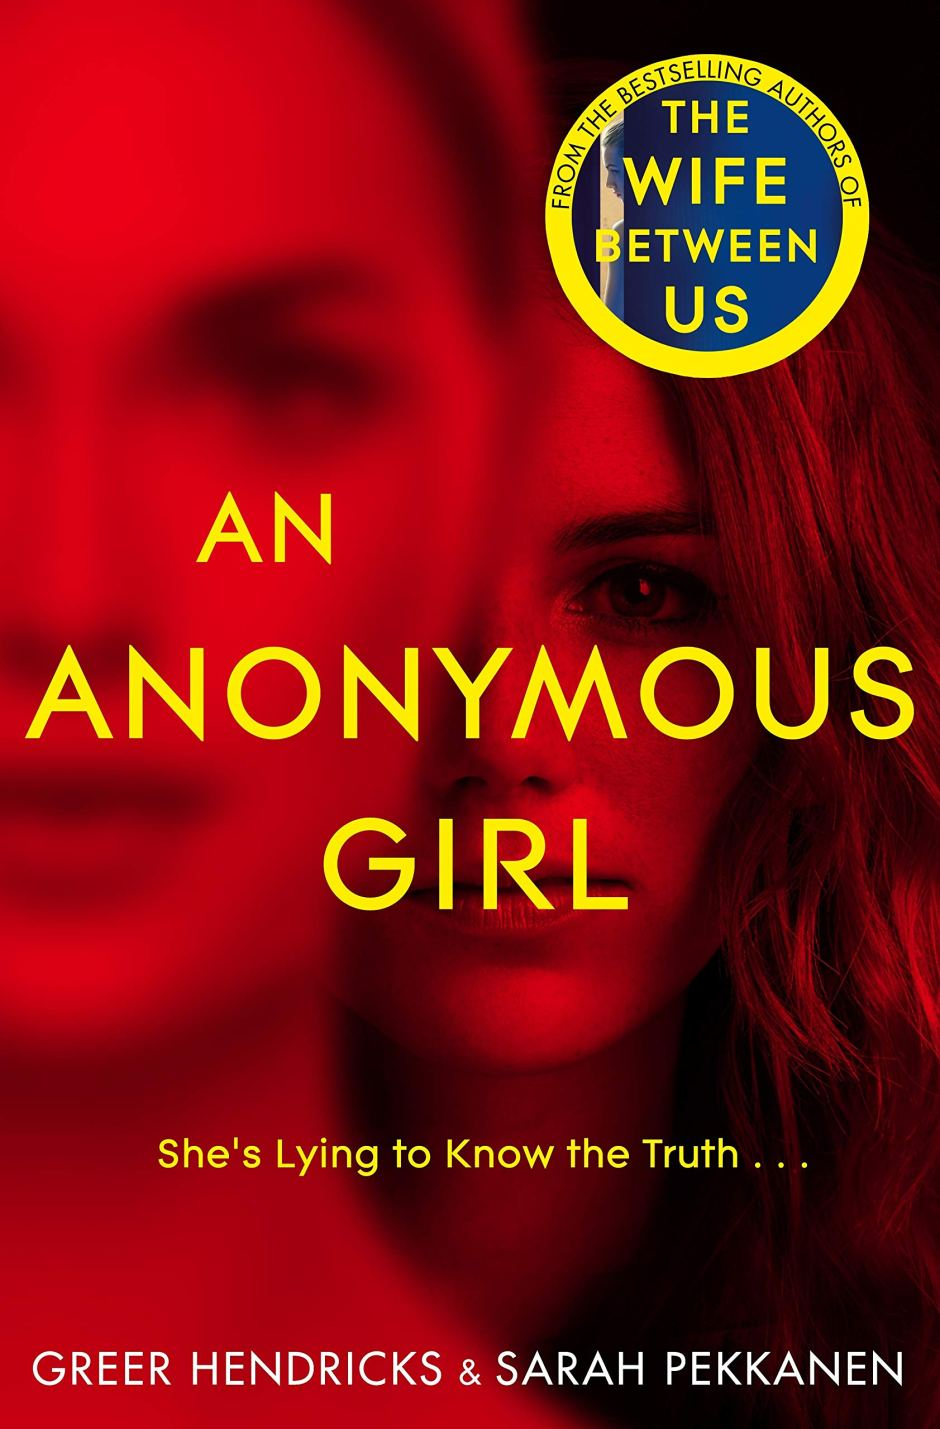 Image result for An Anonymous Girl by Greer Hendricks and Sarah Pekkanen